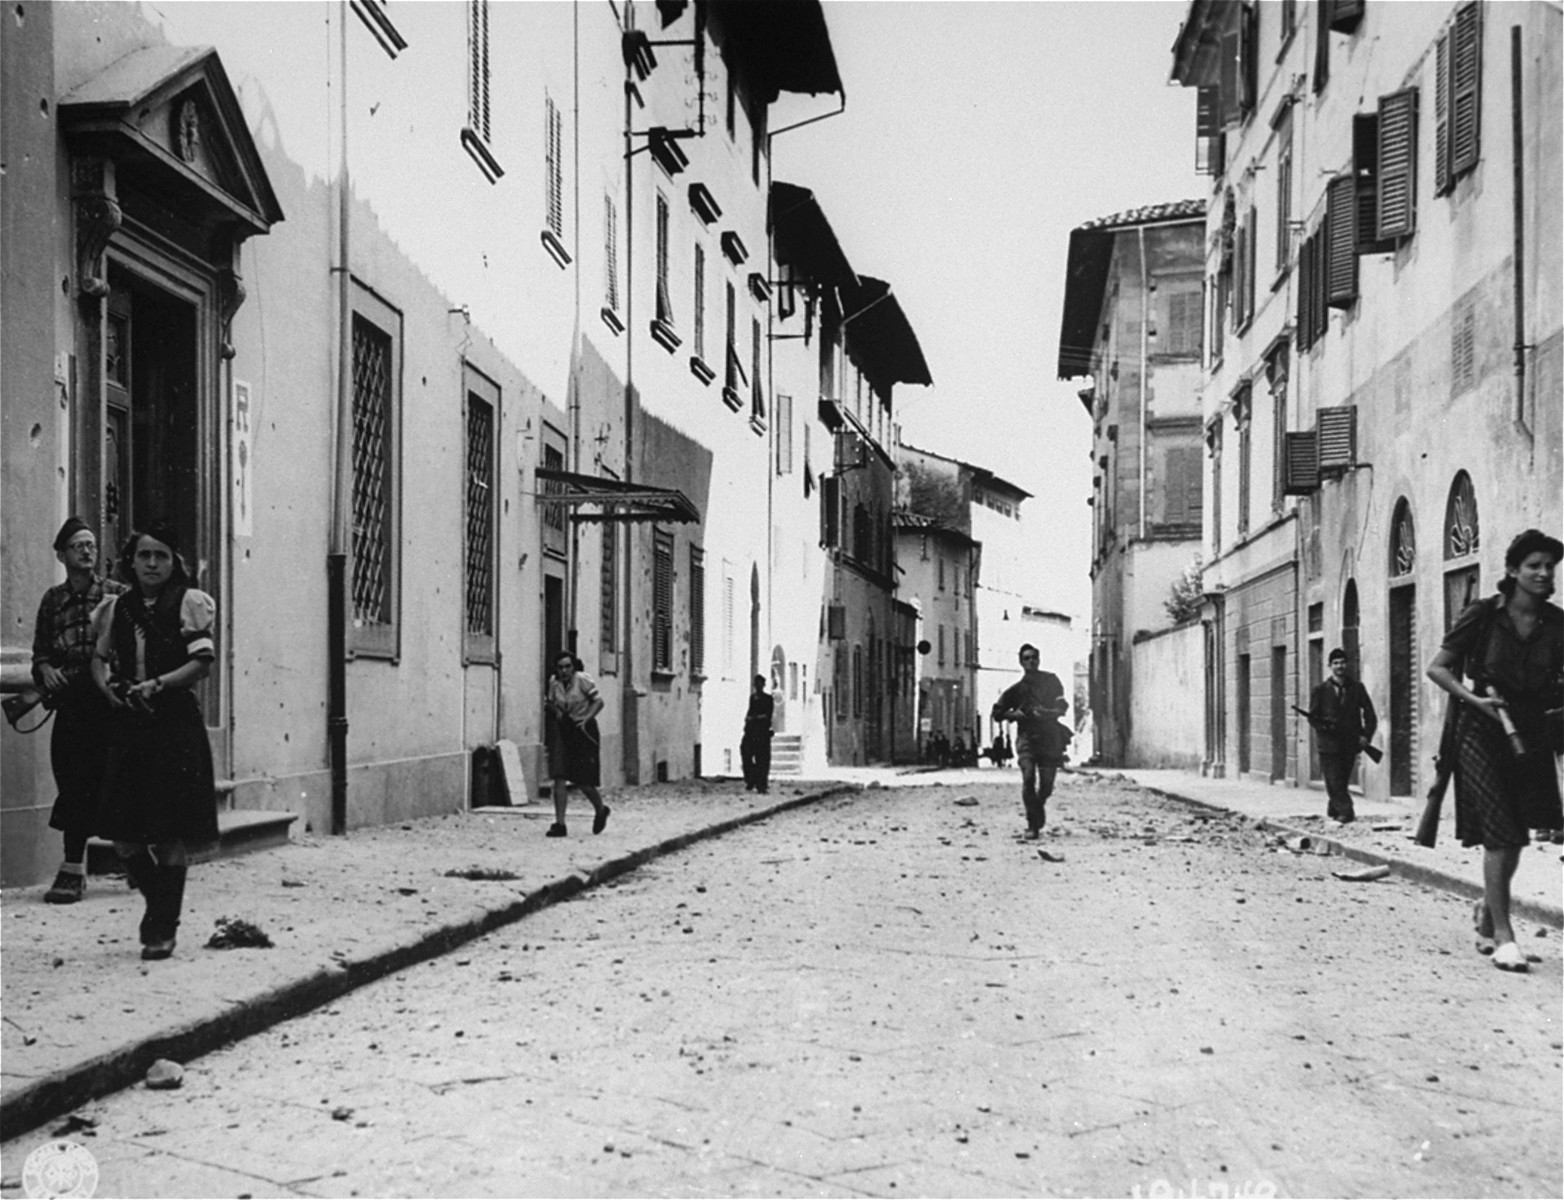 French partisans patrol the streets of an unidentified town during the insurrection in southern France.